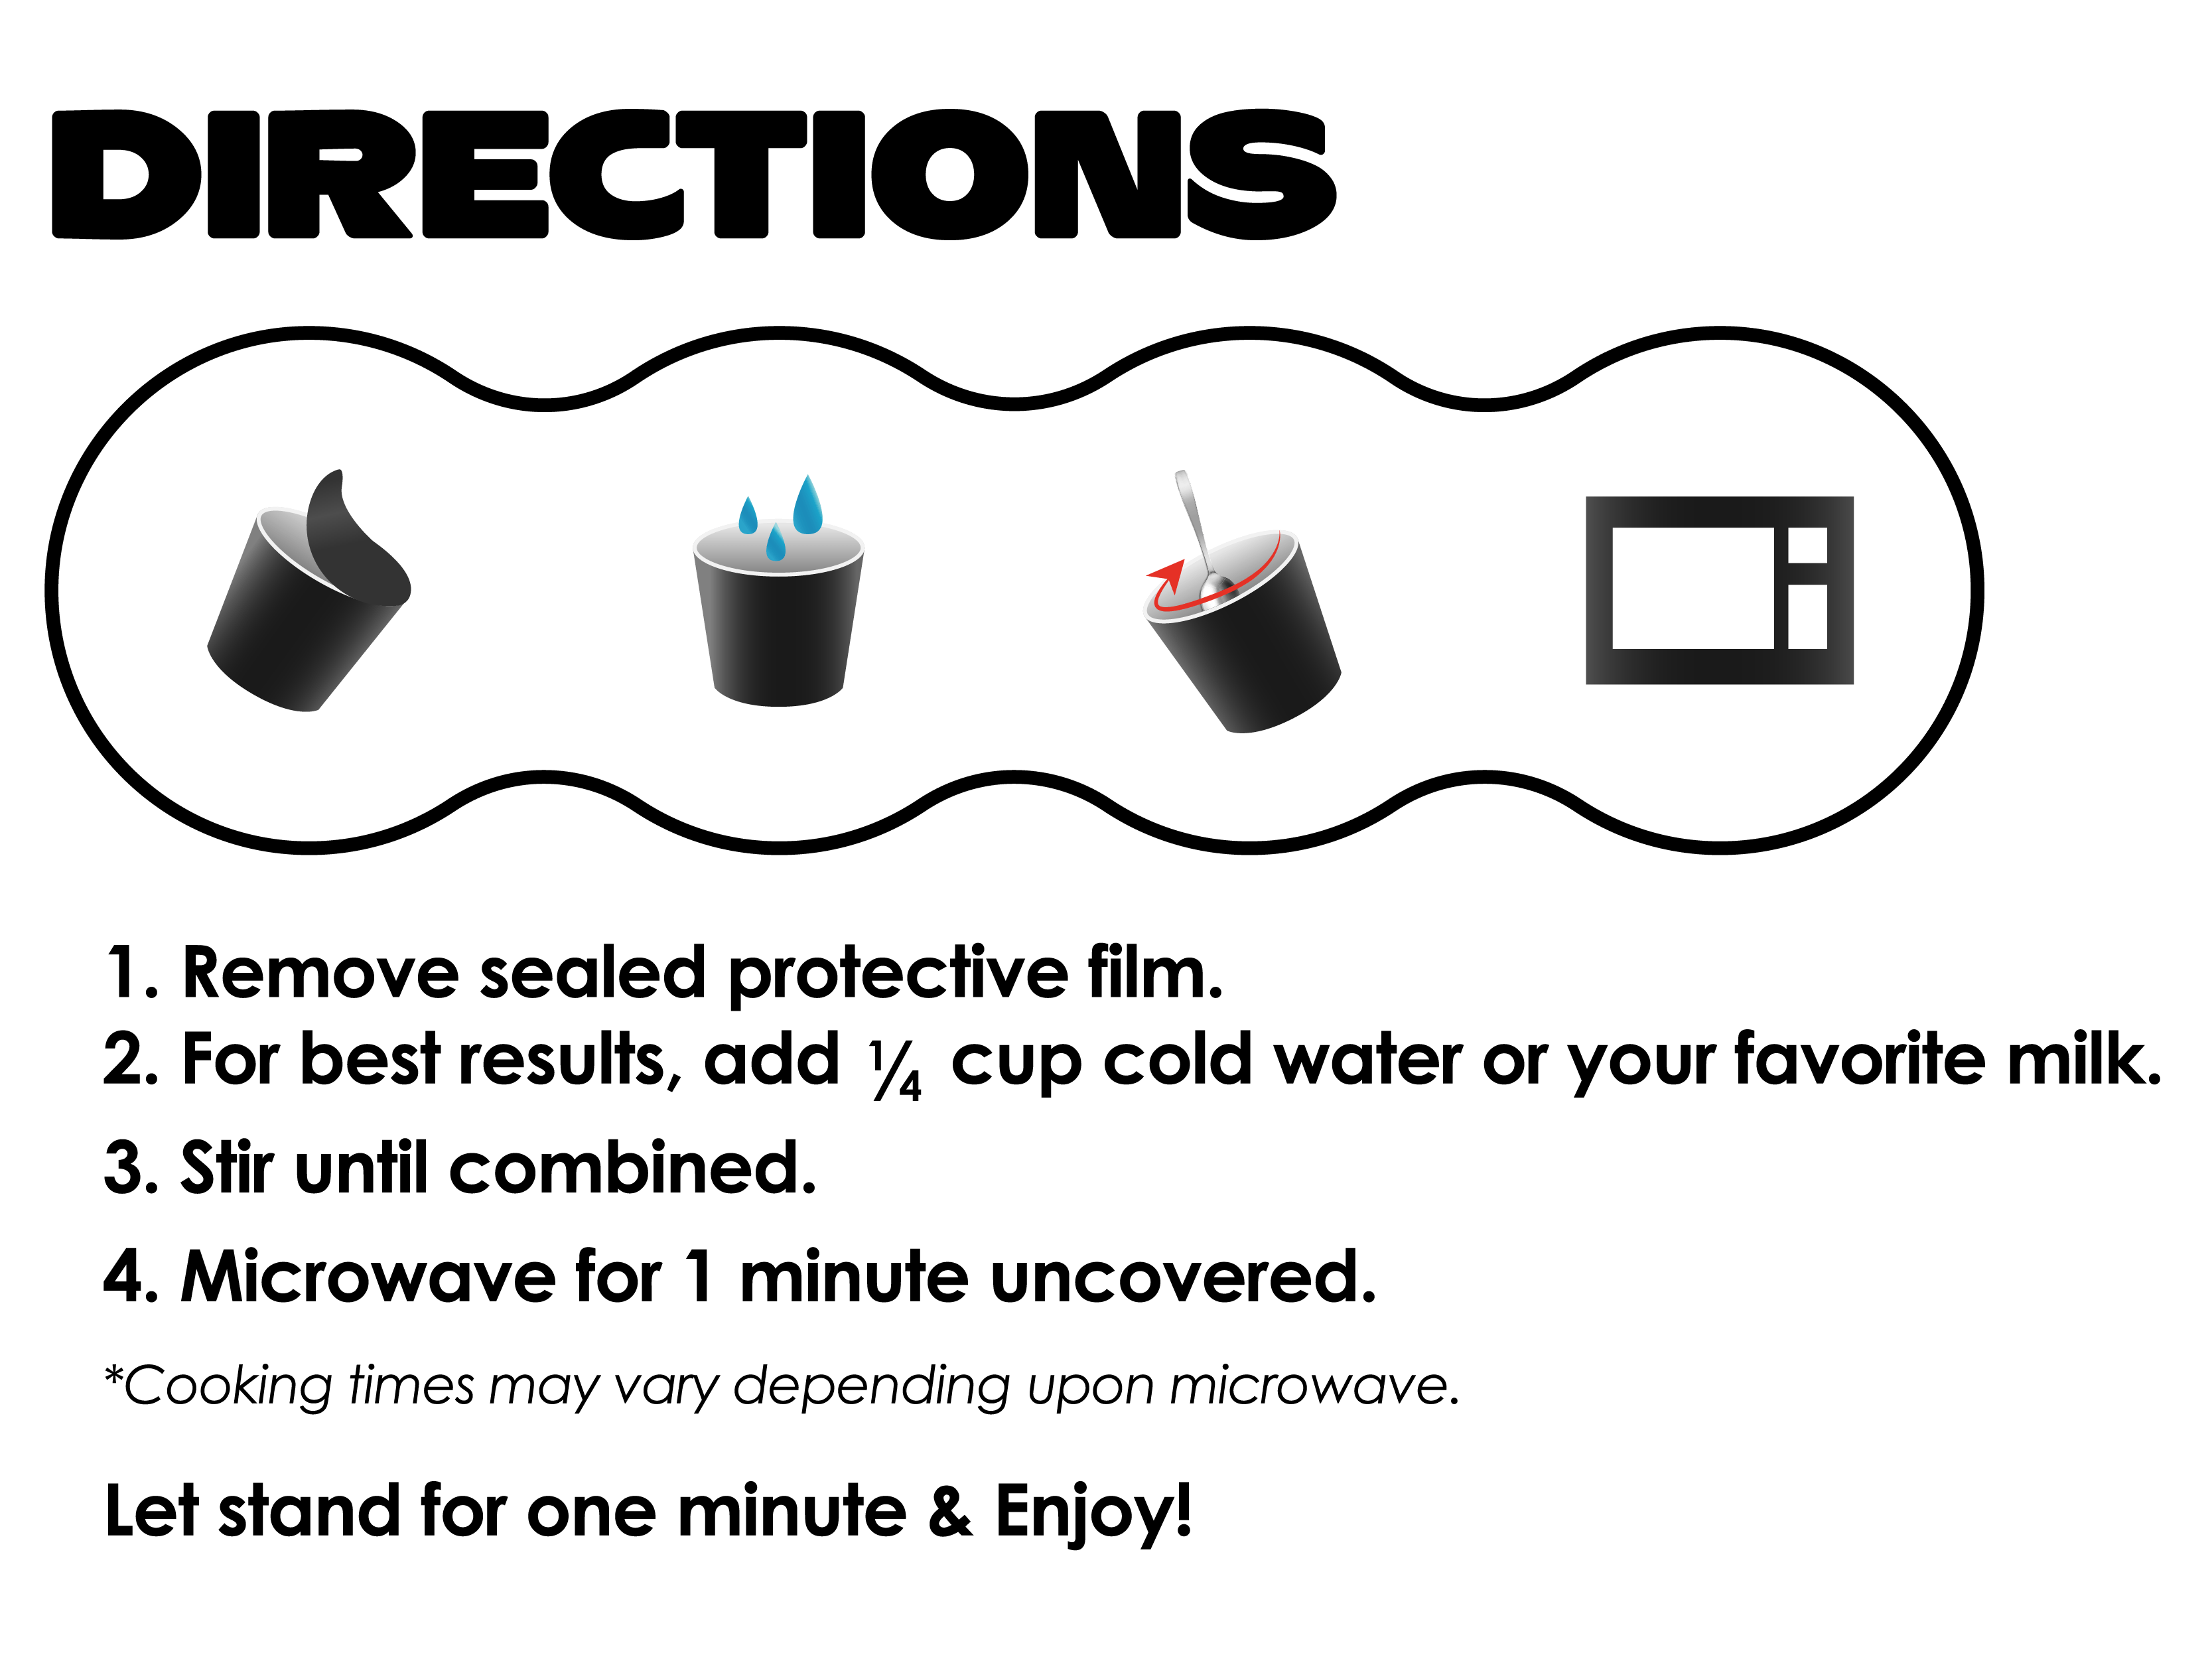 Mindless Cereal and Muffins Directions